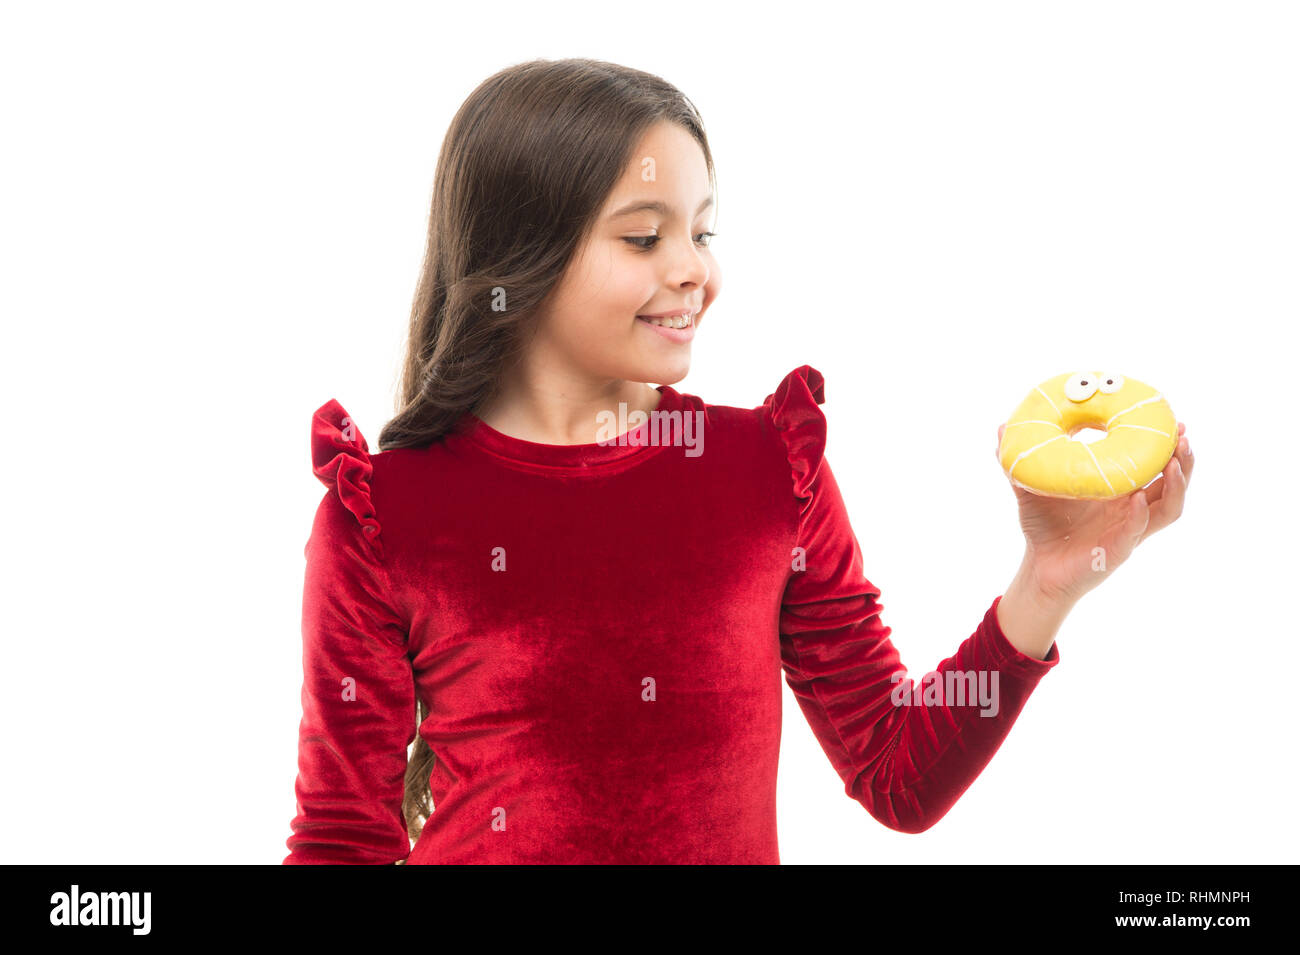 Sweet obsession. Happy childhood and sweet treats. Breaking diet concept. Girl hold sweet donut white background. Child hungry for sweet donut. Sugar levels and healthy nutrition. Nutritionist advice. - Stock Image